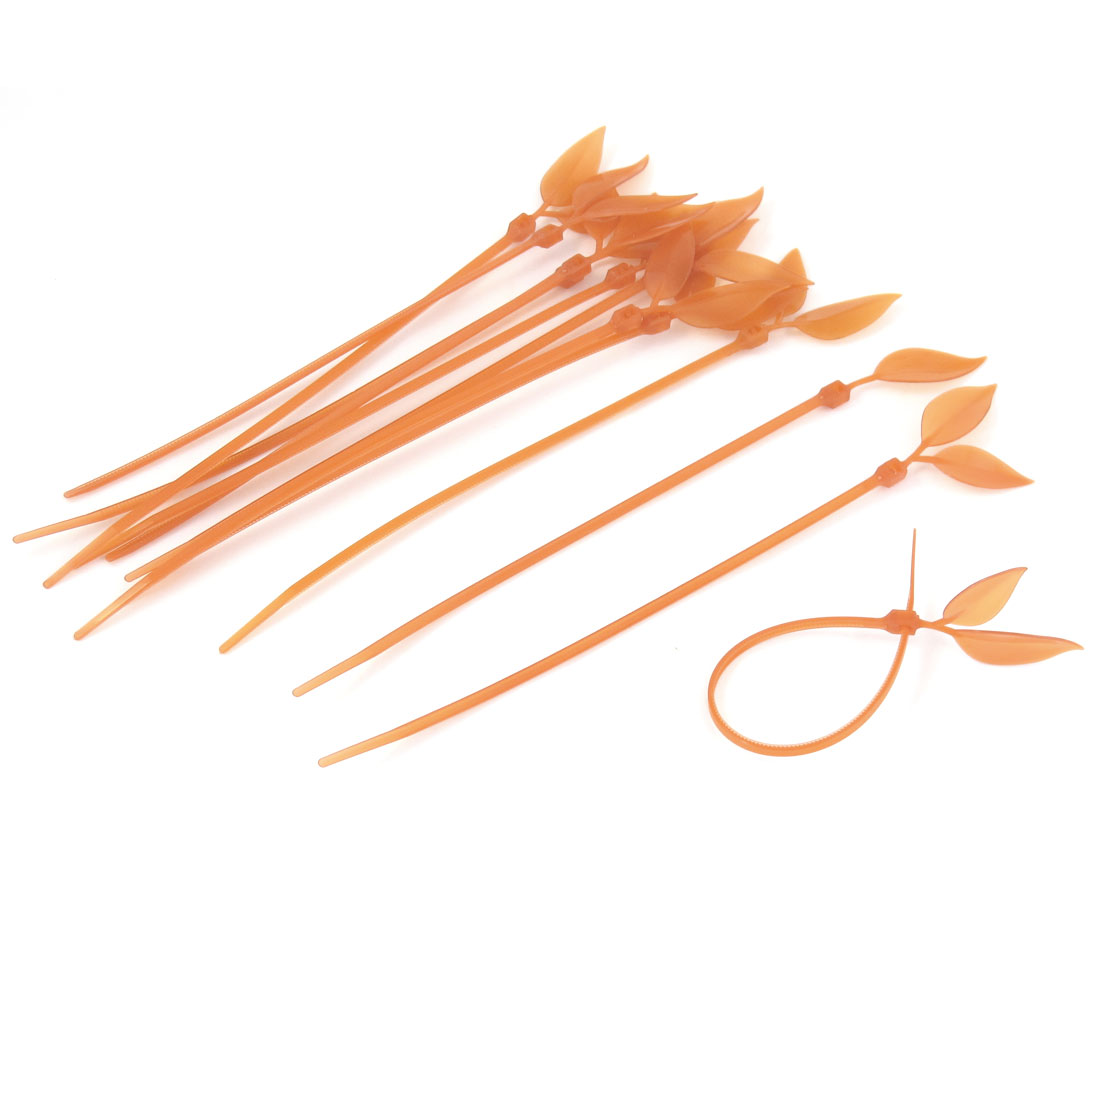 12 Pcs Orange Plastic Leaf Design Wire Cable Ties Tidy Organizer